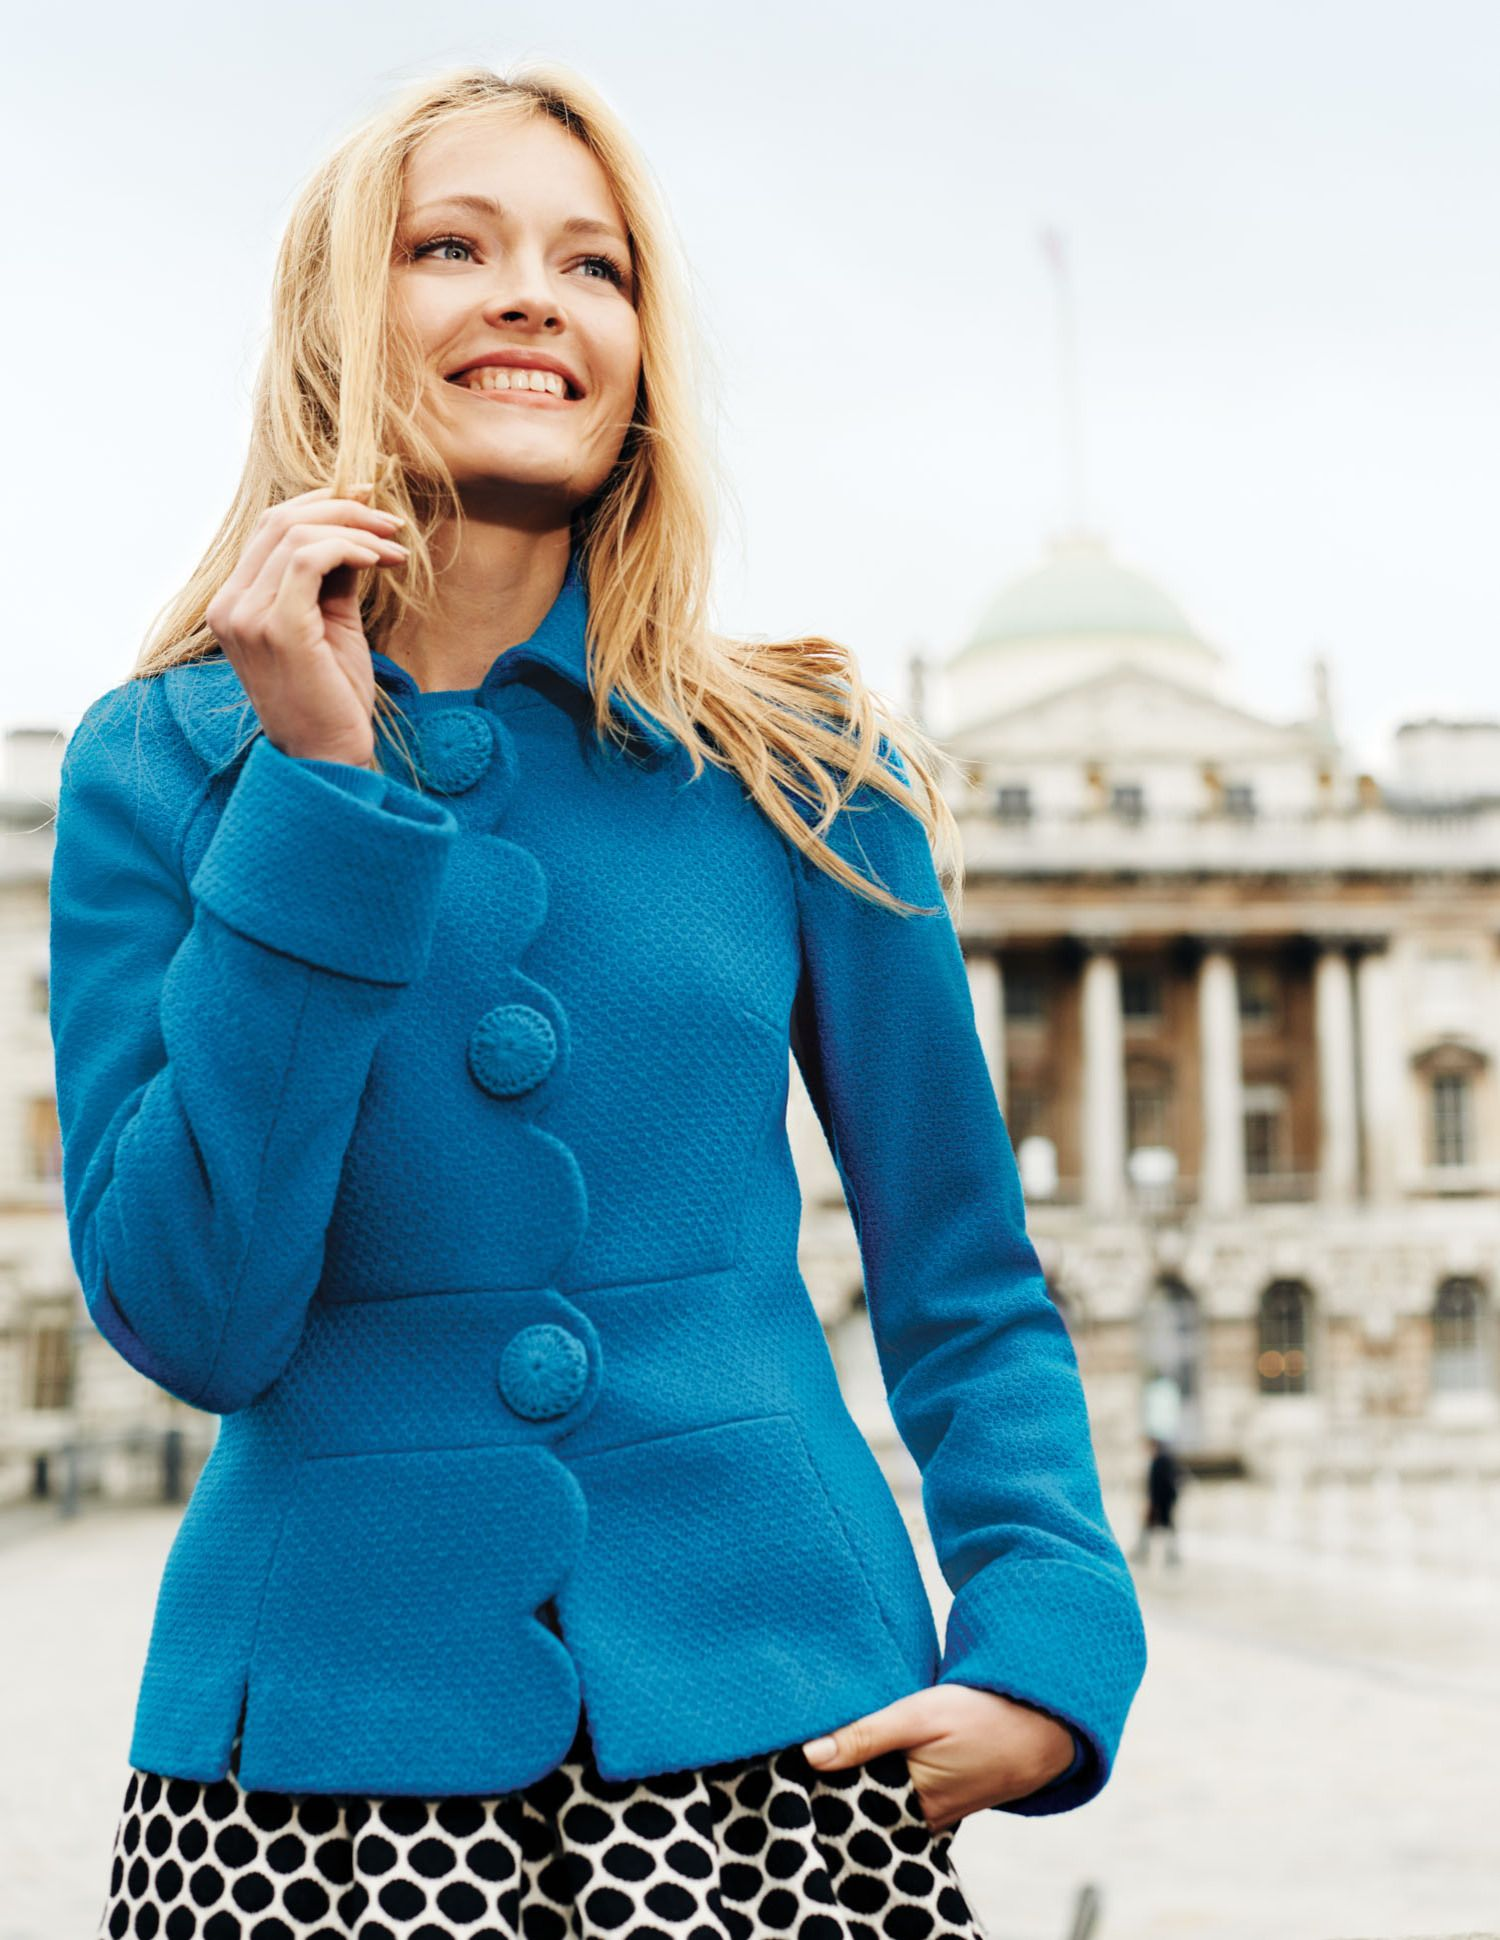 A Smart Little Jacket For Work Or Play Boden Love This Jacket I